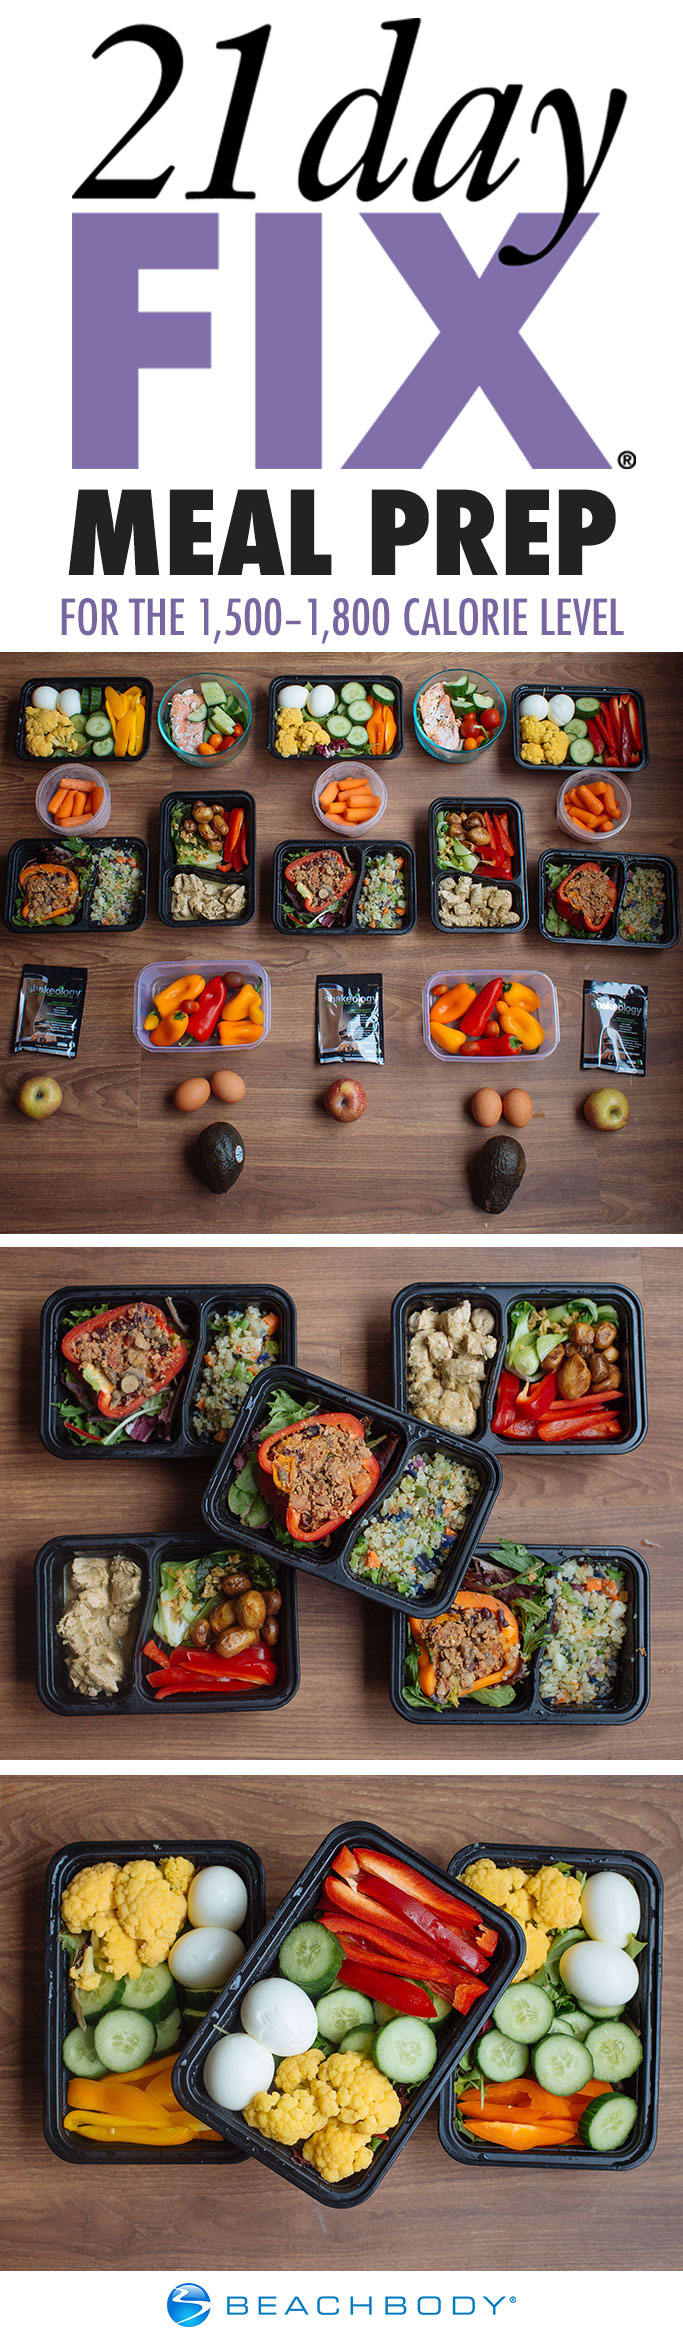 Meal Prep with Taco-Style Stuffed Peppers and Chicken Curry for the 21 Day Fix 1,500–1,800 Calorie Level #mealprep #mealplanning #21dayfix #21dayfixmealprep #21dayfixideas #21dayfixrecipes #healthyeating